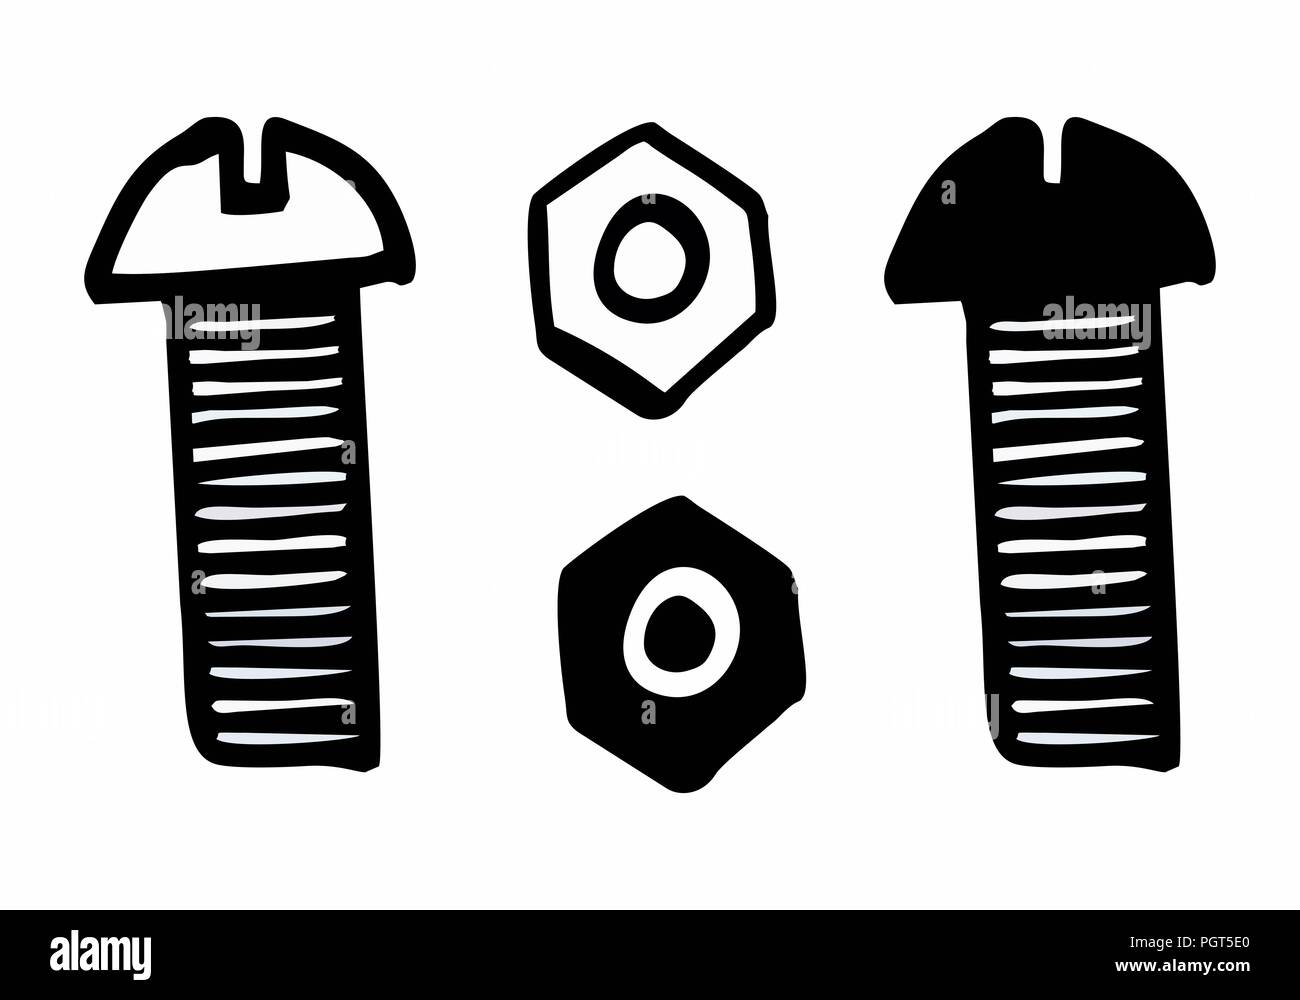 Hand-drawn style illustration of bolt and nut on white background - Stock Vector